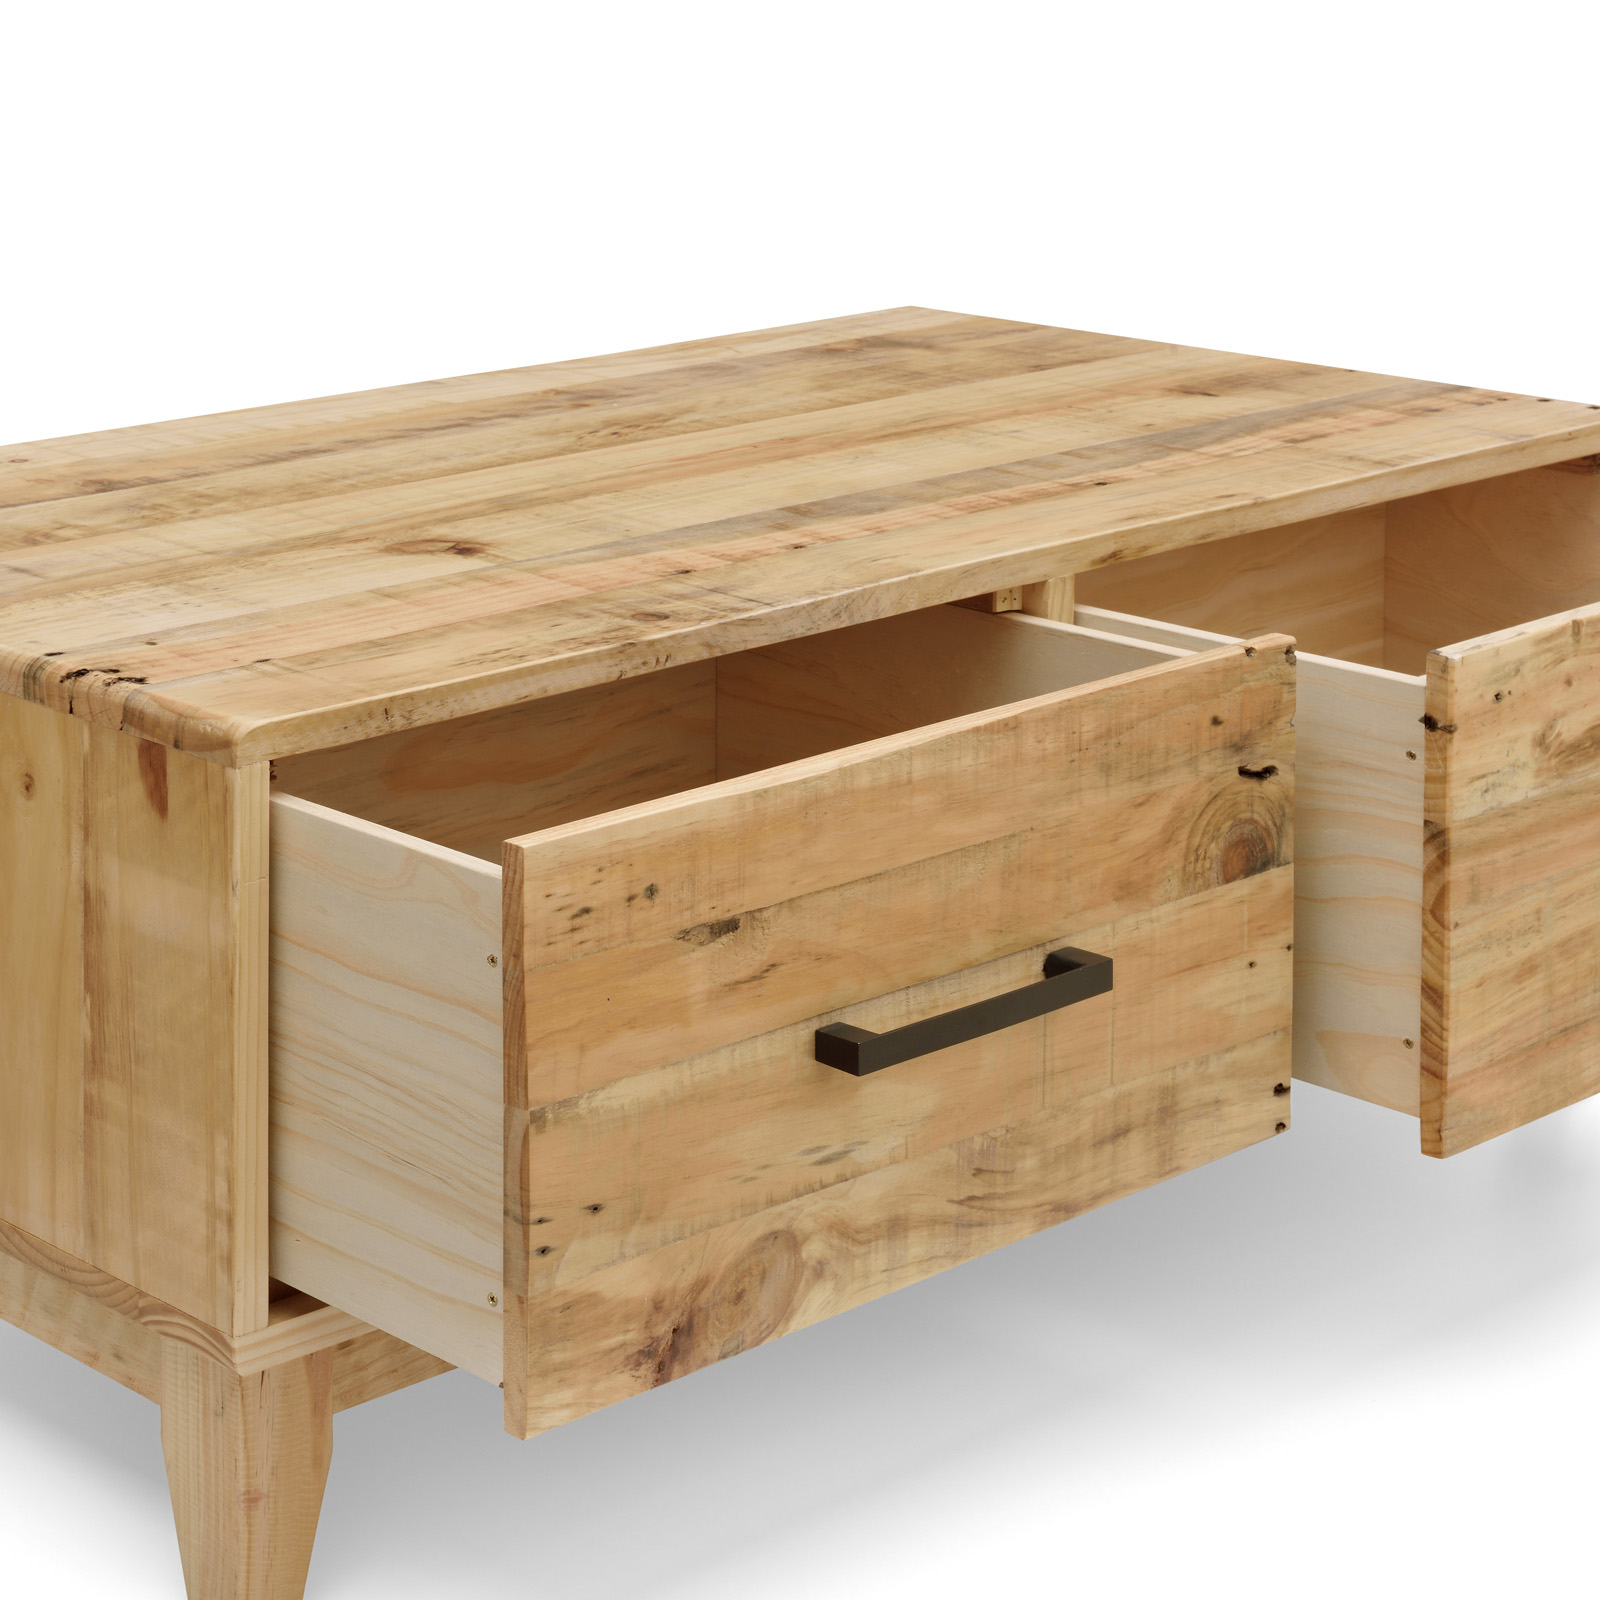 Portland brand new recycled solid pine timber coffee table for Portland reclaimed wood furniture